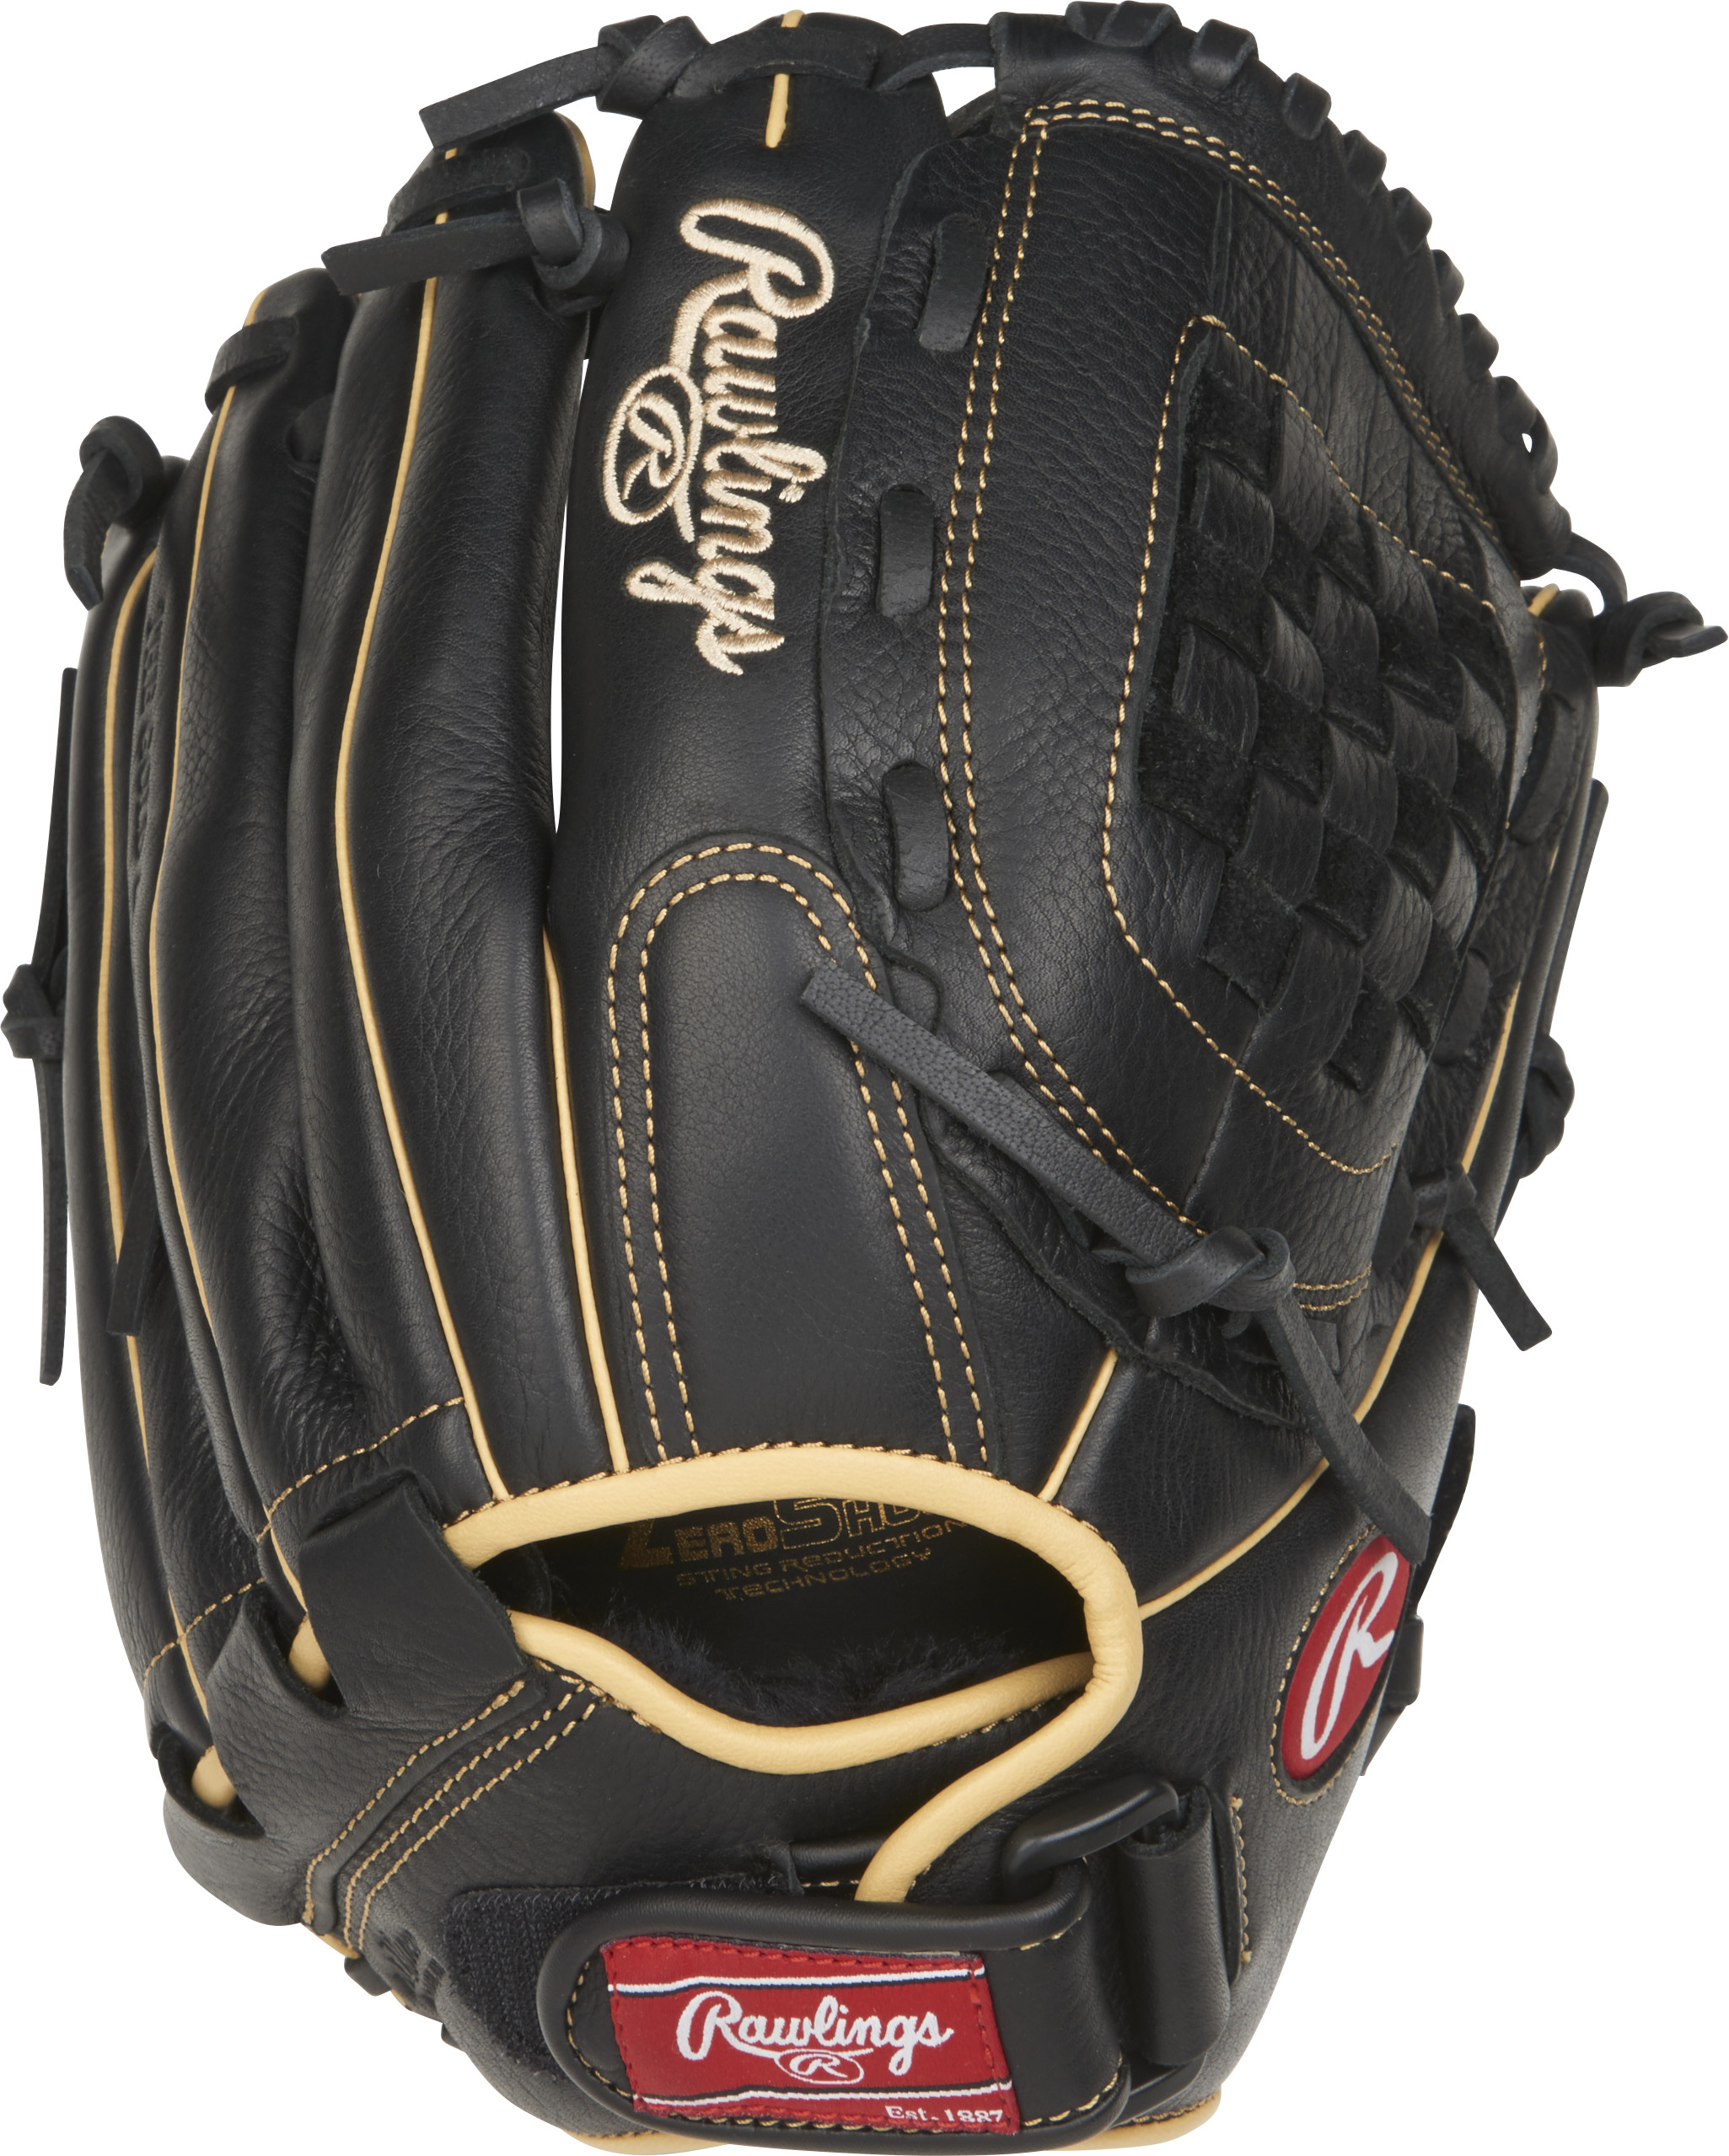 http://www.bestbatdeals.com/images/gloves/rawlings/RSO120BCC-2.jpg